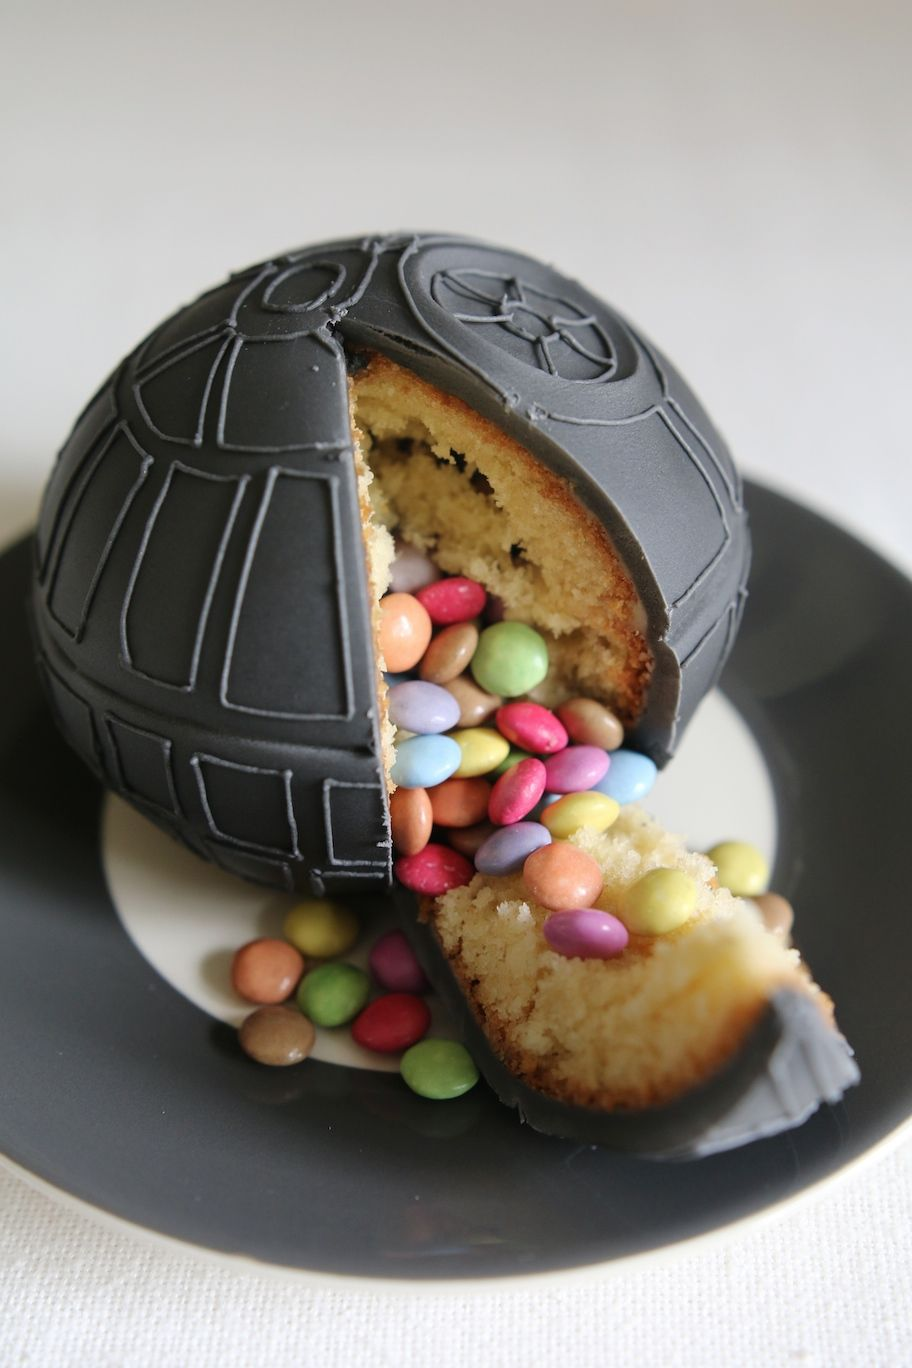 Star Wars Küche Guys I M A Little Bit Obsessed With This Cake If It Wasn T For